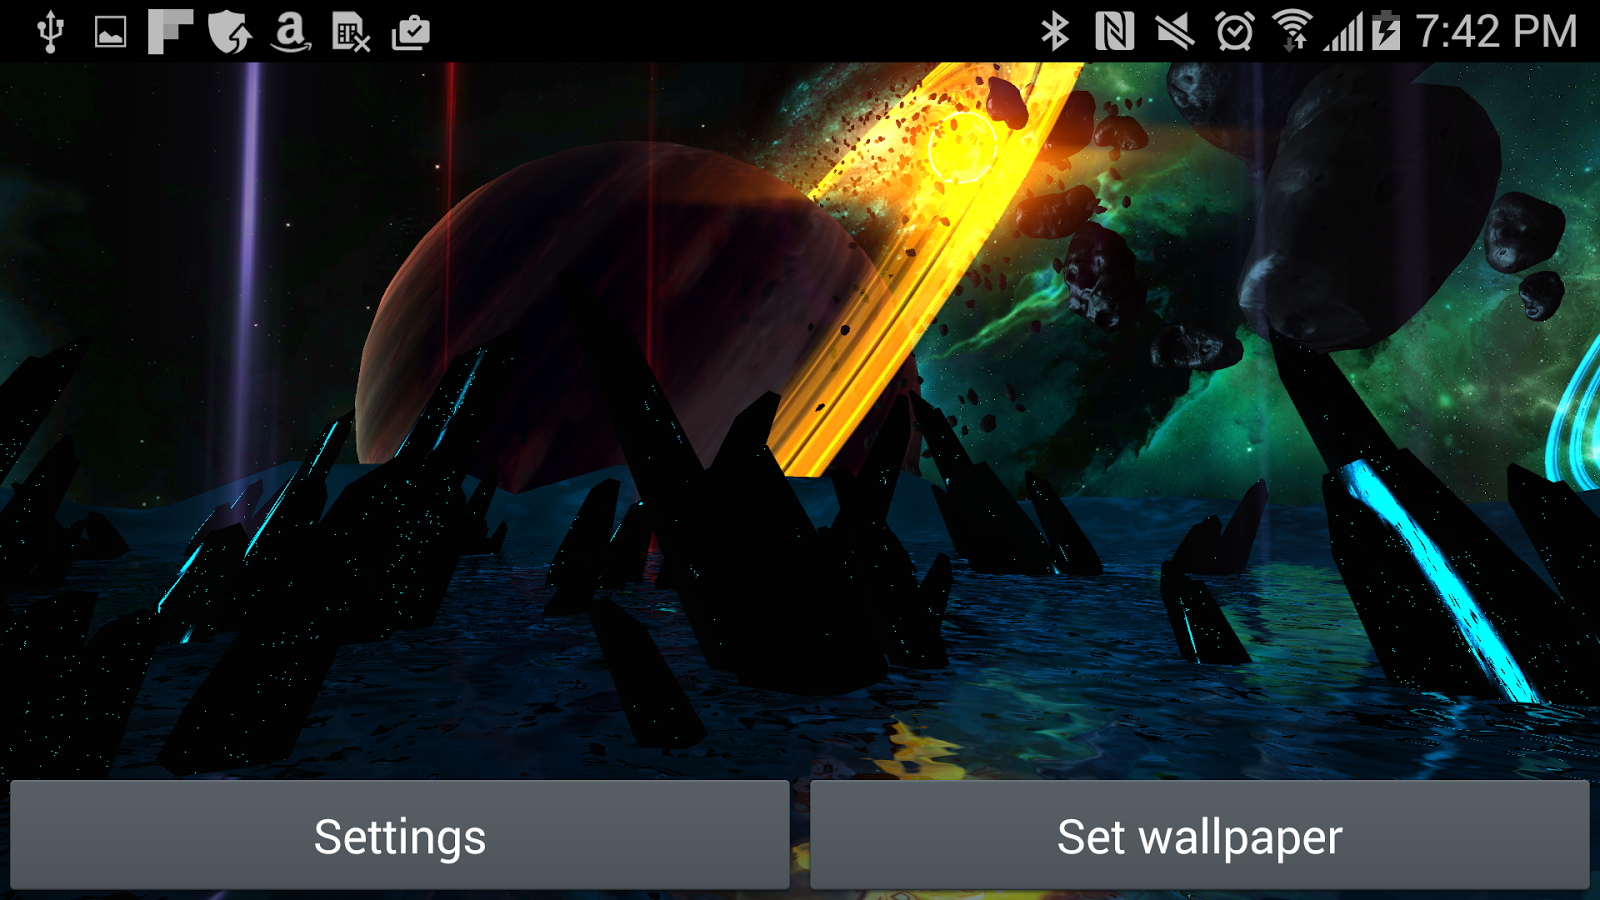 Far Galaxy 3D Live Wallpaper Screenshot 19